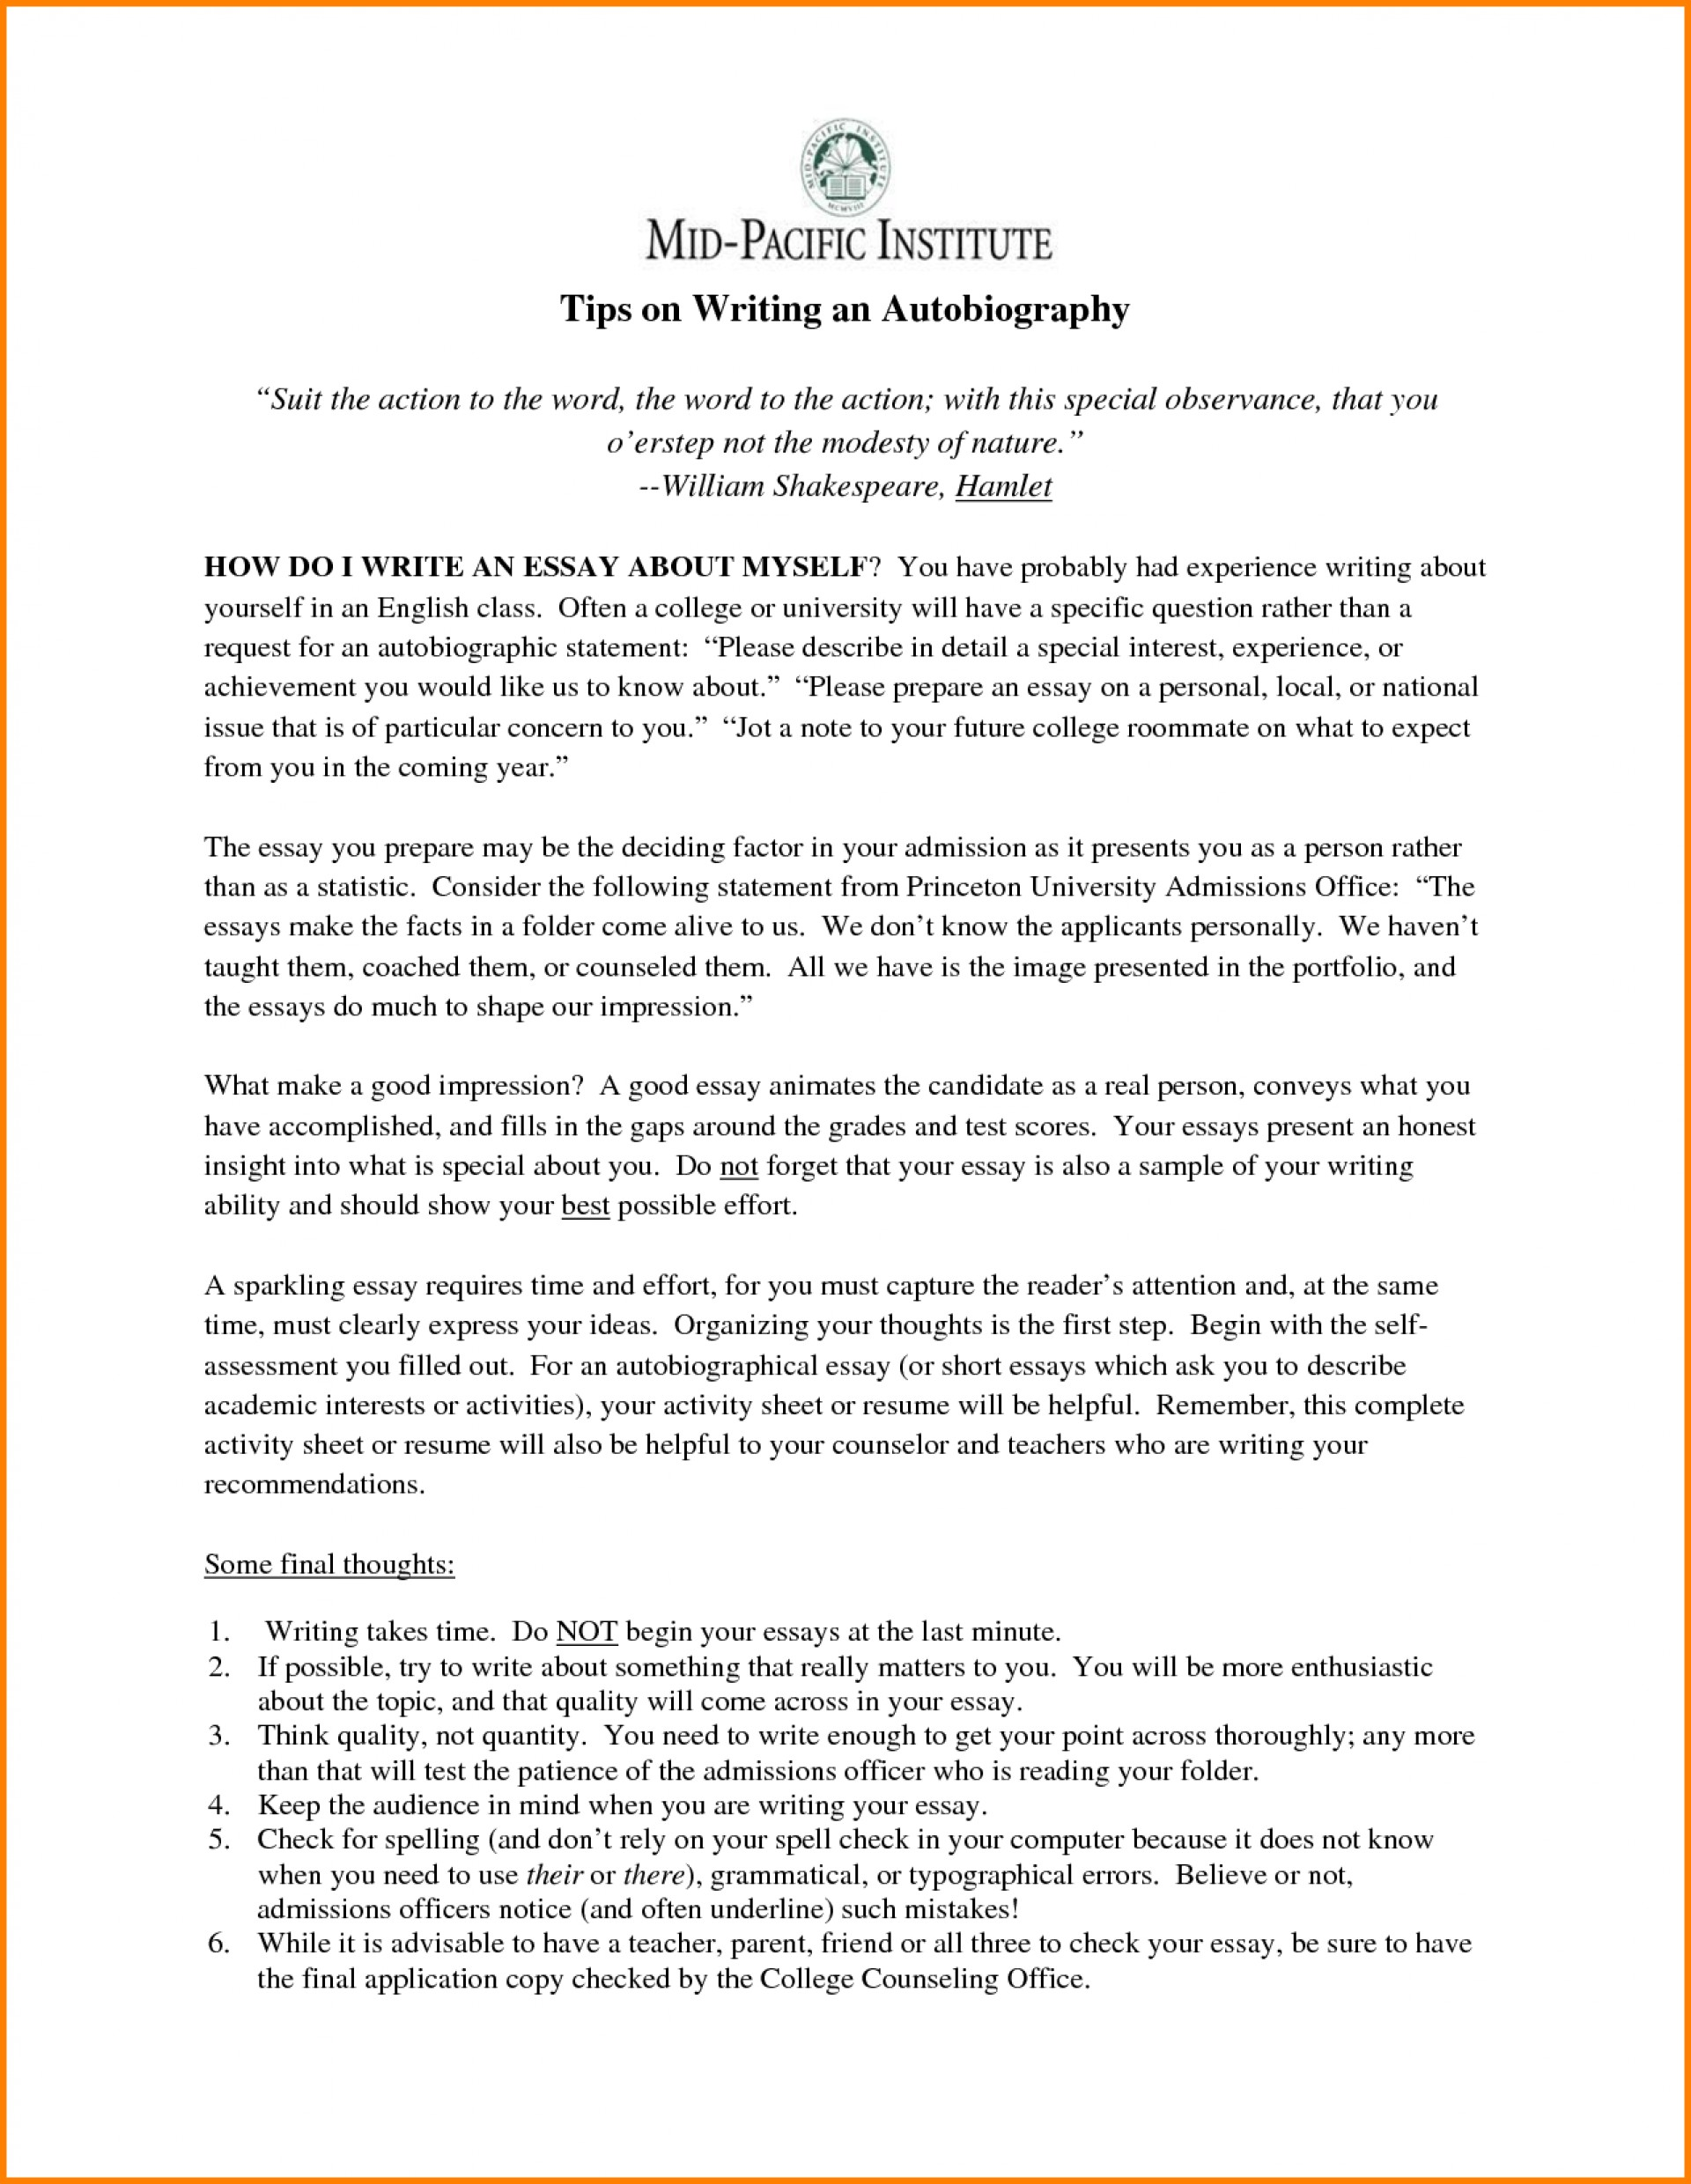 007 Essay Example How To Begin An Start College Application About Yourself Starting L Incredible Write On A Book You Didn't Read Open Paragraph For 1920